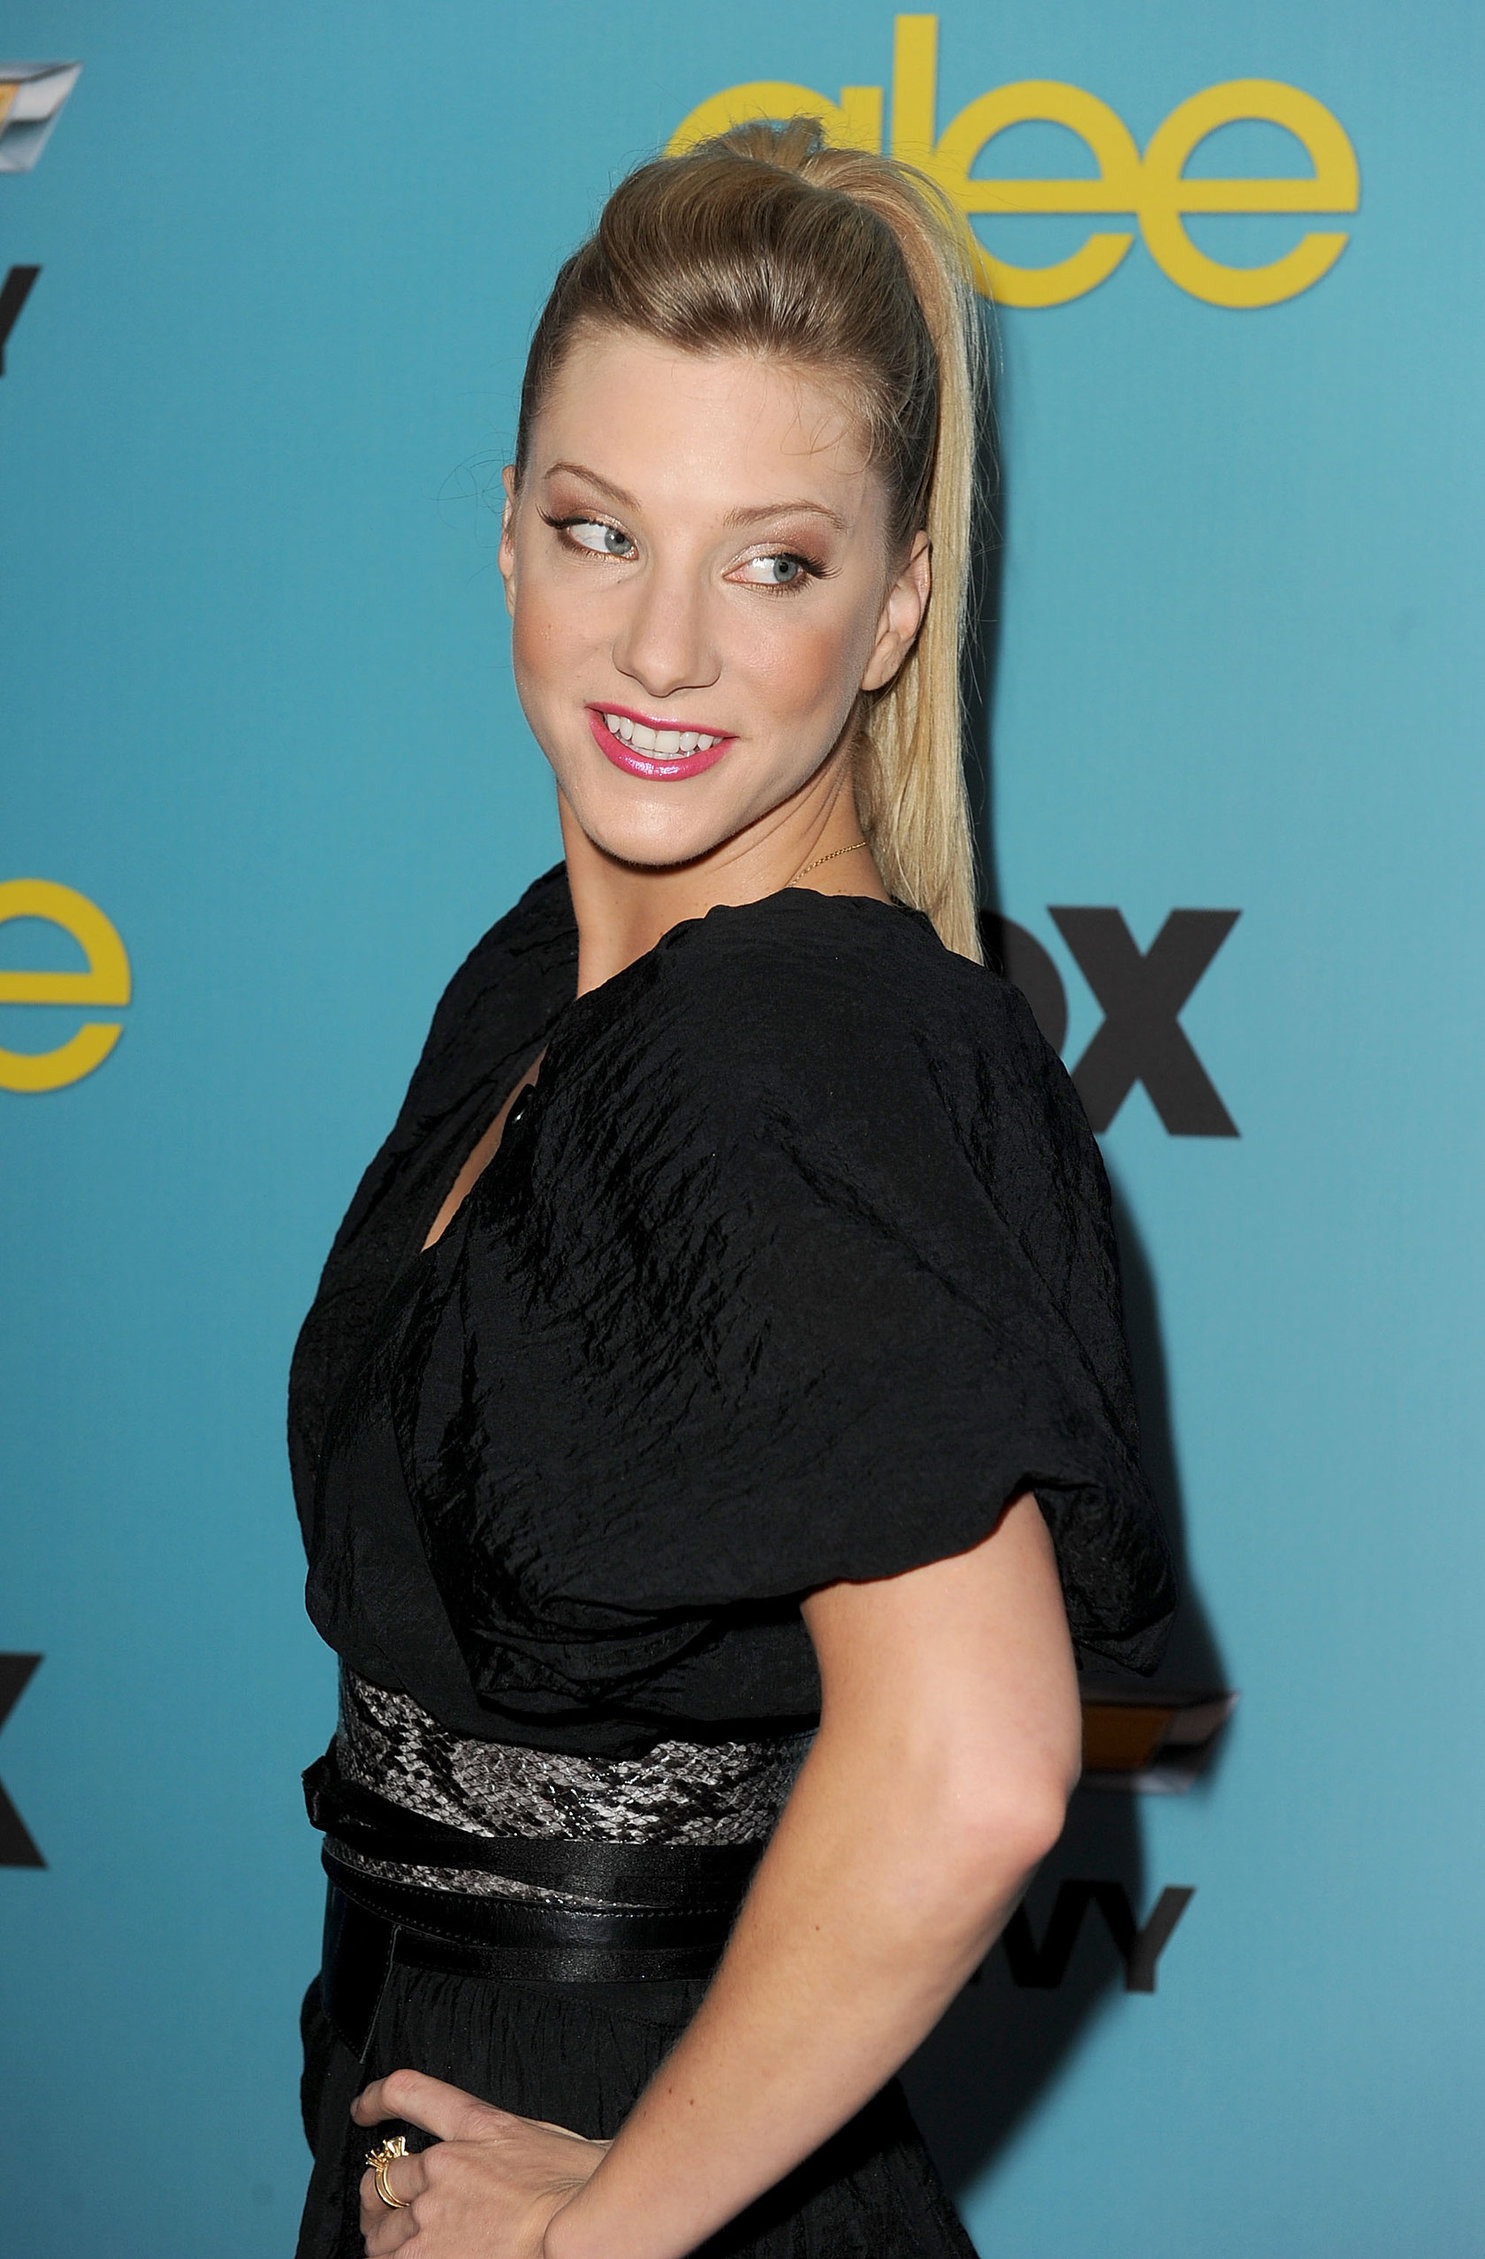 Heather Morris - Fox's 'Glee' spring premiere soiree in LA 4/12/10